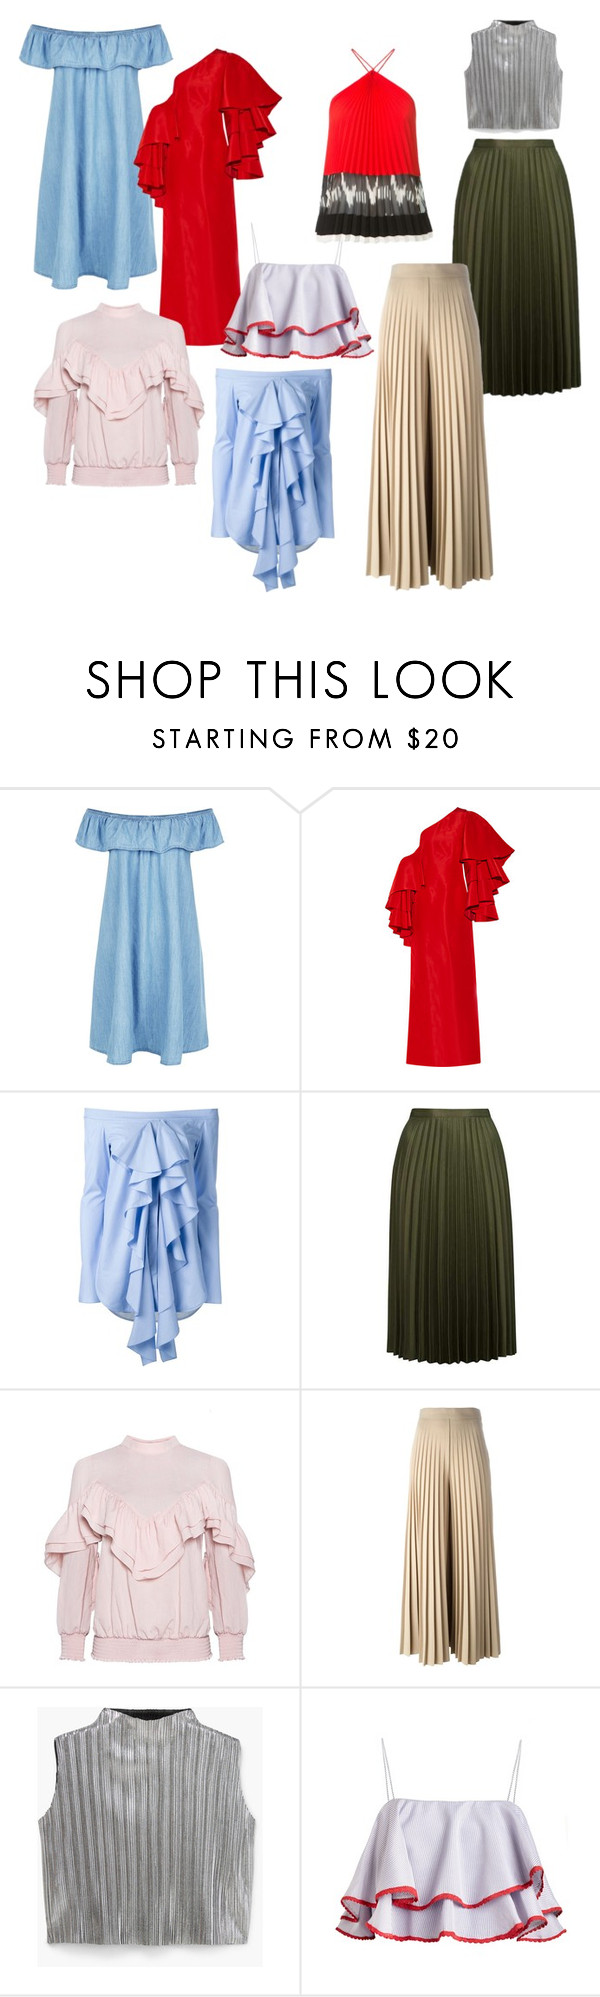 """Ruffles & Pleats"" by thedailyuniform on Polyvore featuring New Look, Rosie Assoulin, E L L E R Y, Topshop, Givenchy, MANGO and Altuzarra"